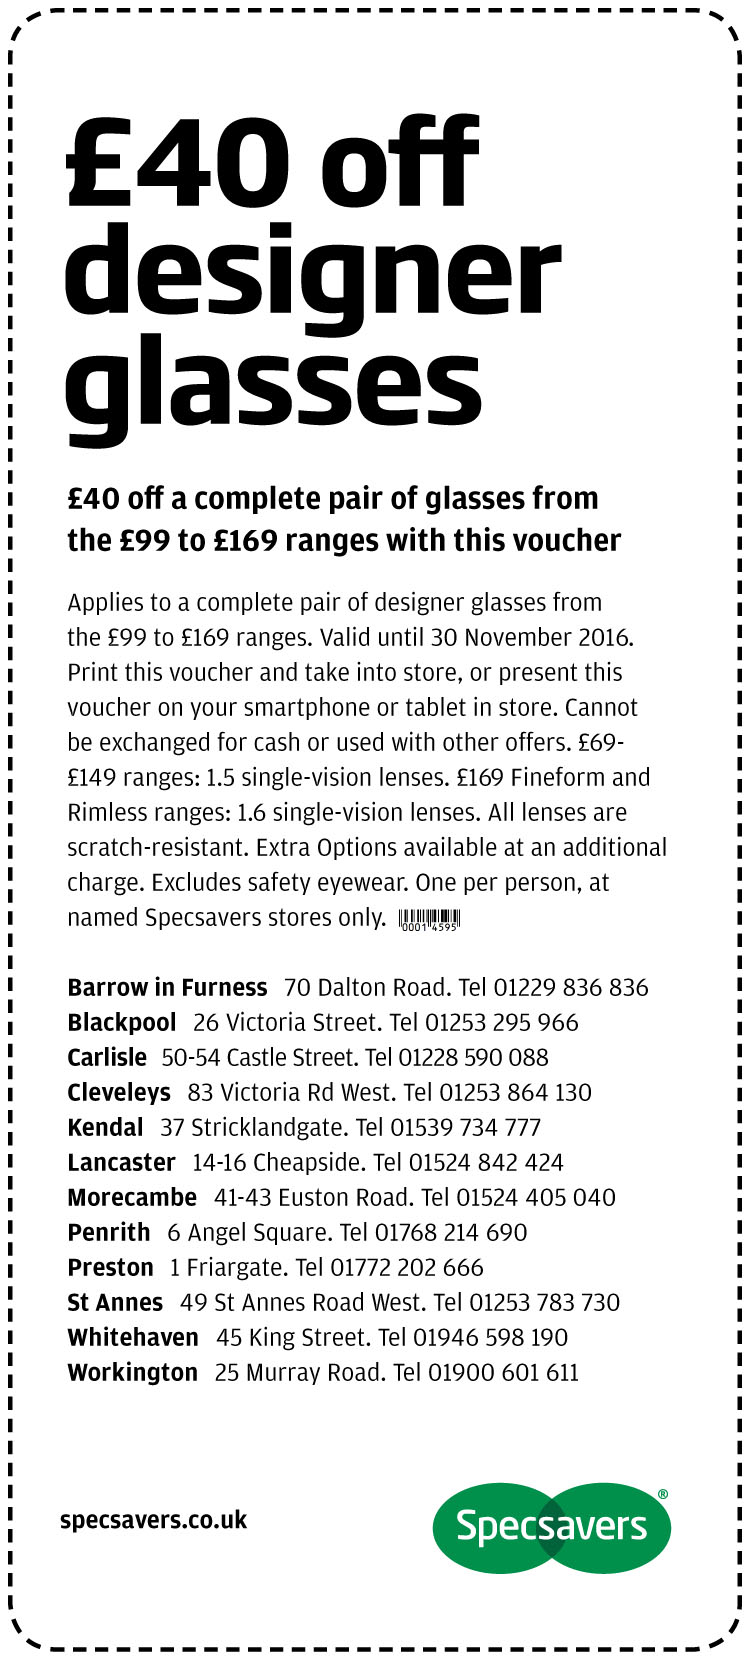 £40 off designer glasses - North West (North)